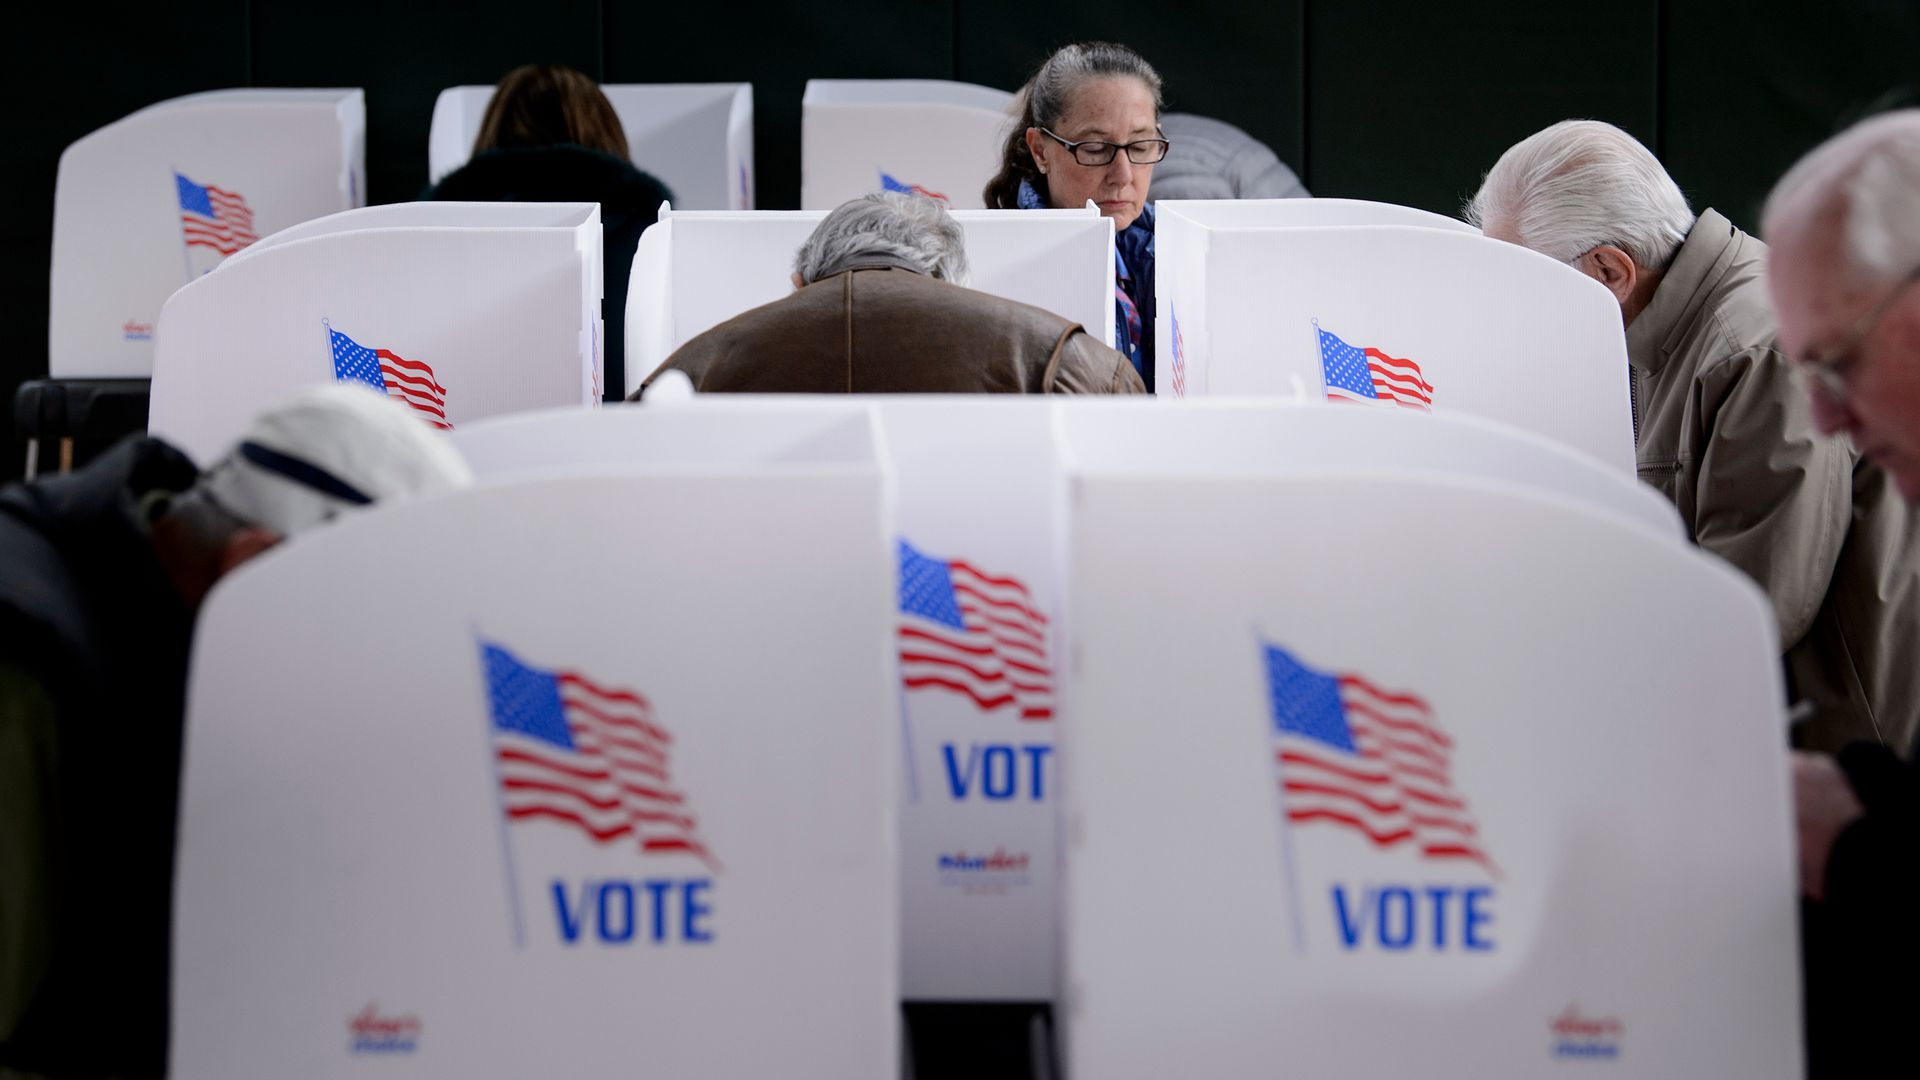 People cast their ballots at a community center during early voting October 25, 2018 in Potomac, Maryland